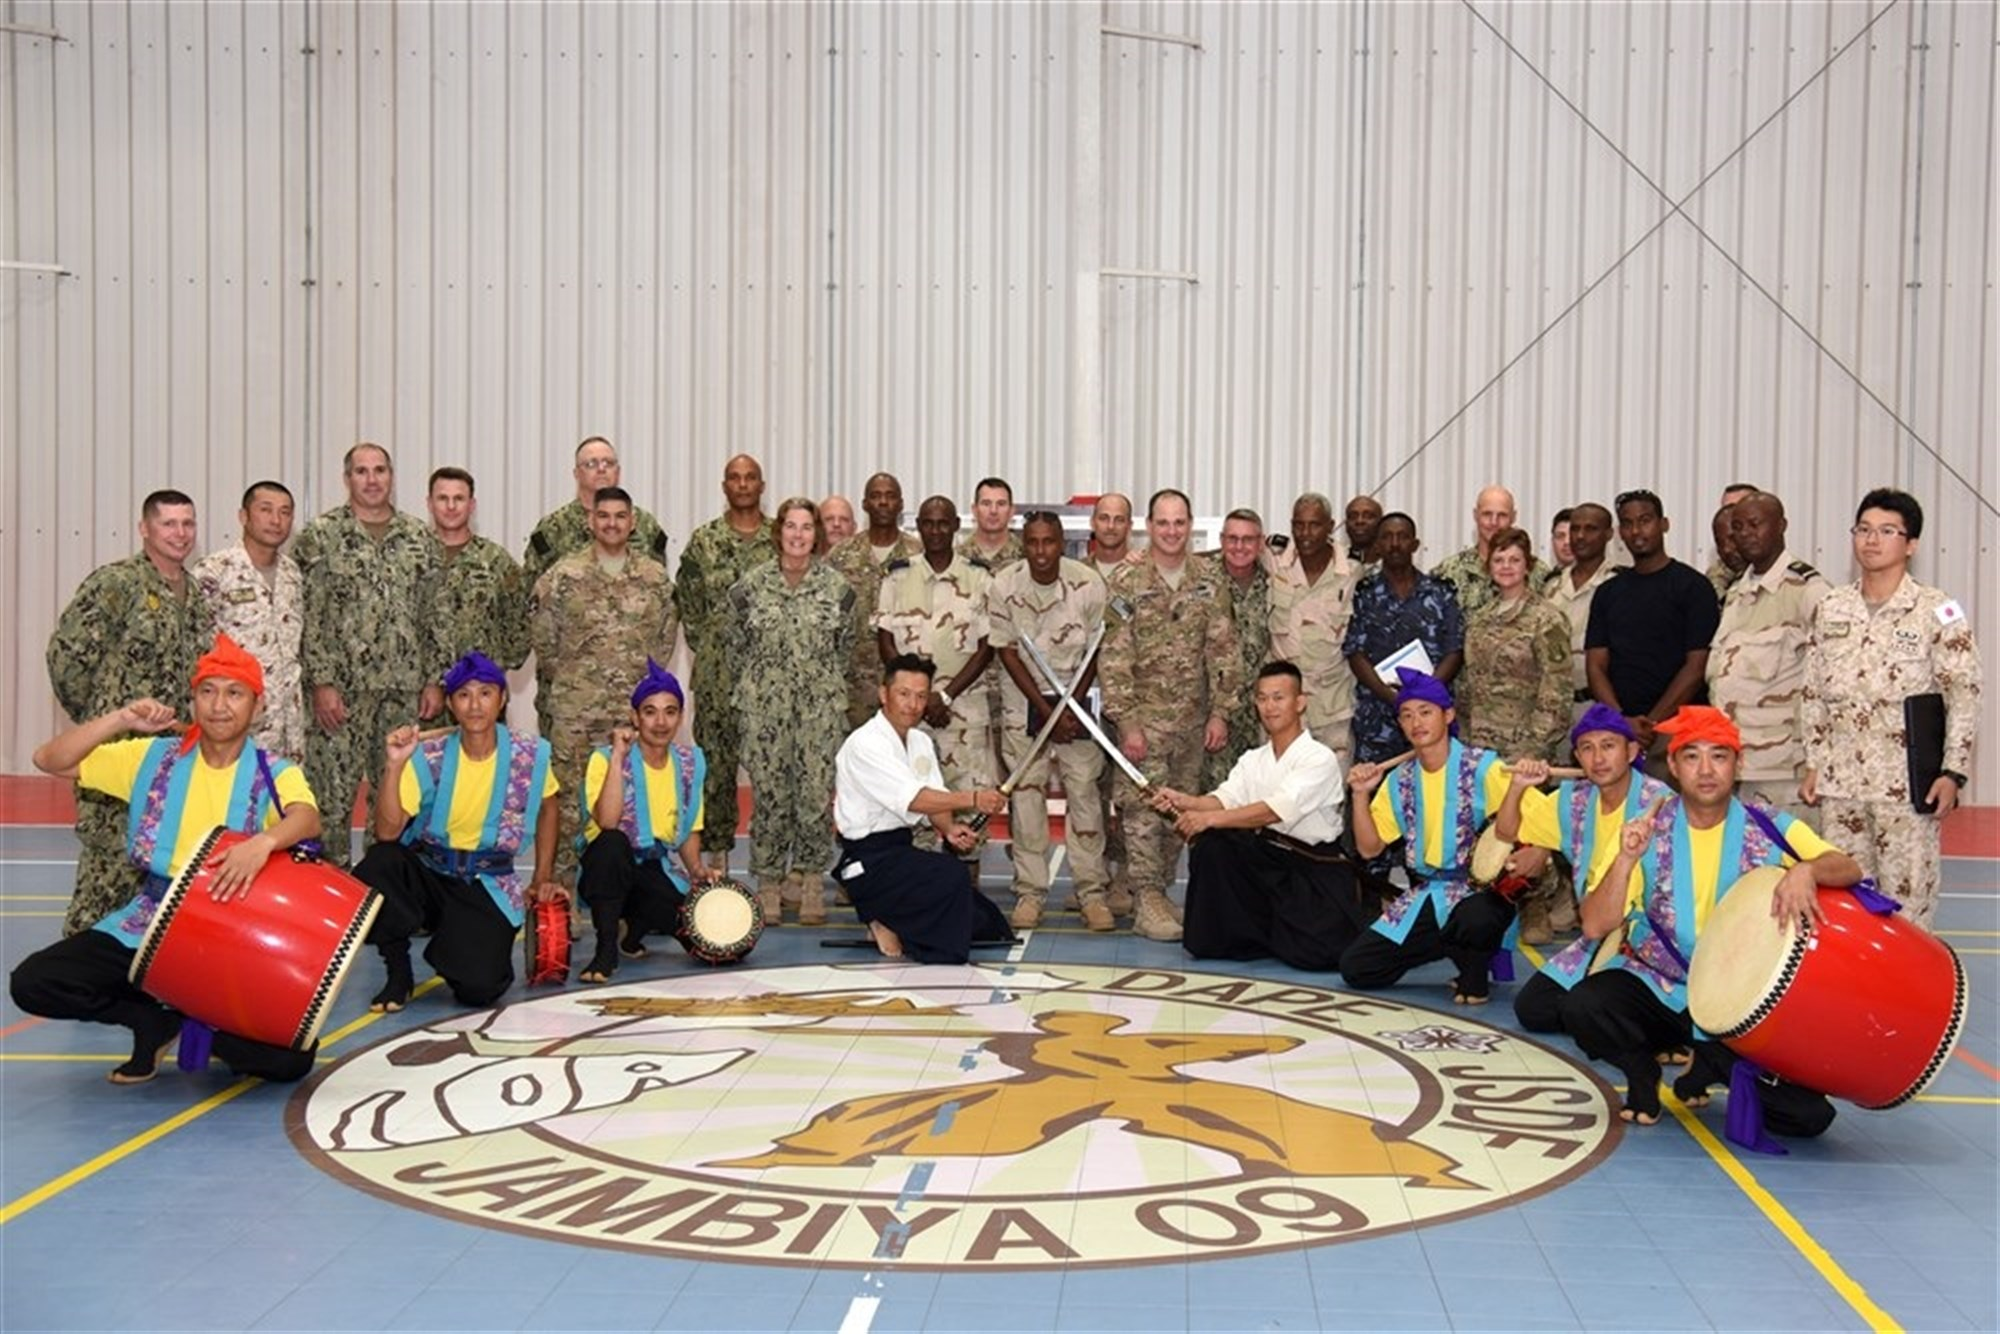 Senior enlisted members from Japan, Djibouti and the U.S. join in a traditional Eisa dance during the Joint Forces Senior Enlisted Professional Development Course at the Japanese base in Djibouti, Nov. 24, 2015. Eisa is a traditional dance, unique to Okinawa, the southernmost prefecture of Japan, and is performed during seasonal festivals to honor and thank ancestors. (U.S. Air Force photo by Staff Sgt. Victoria Sneed)